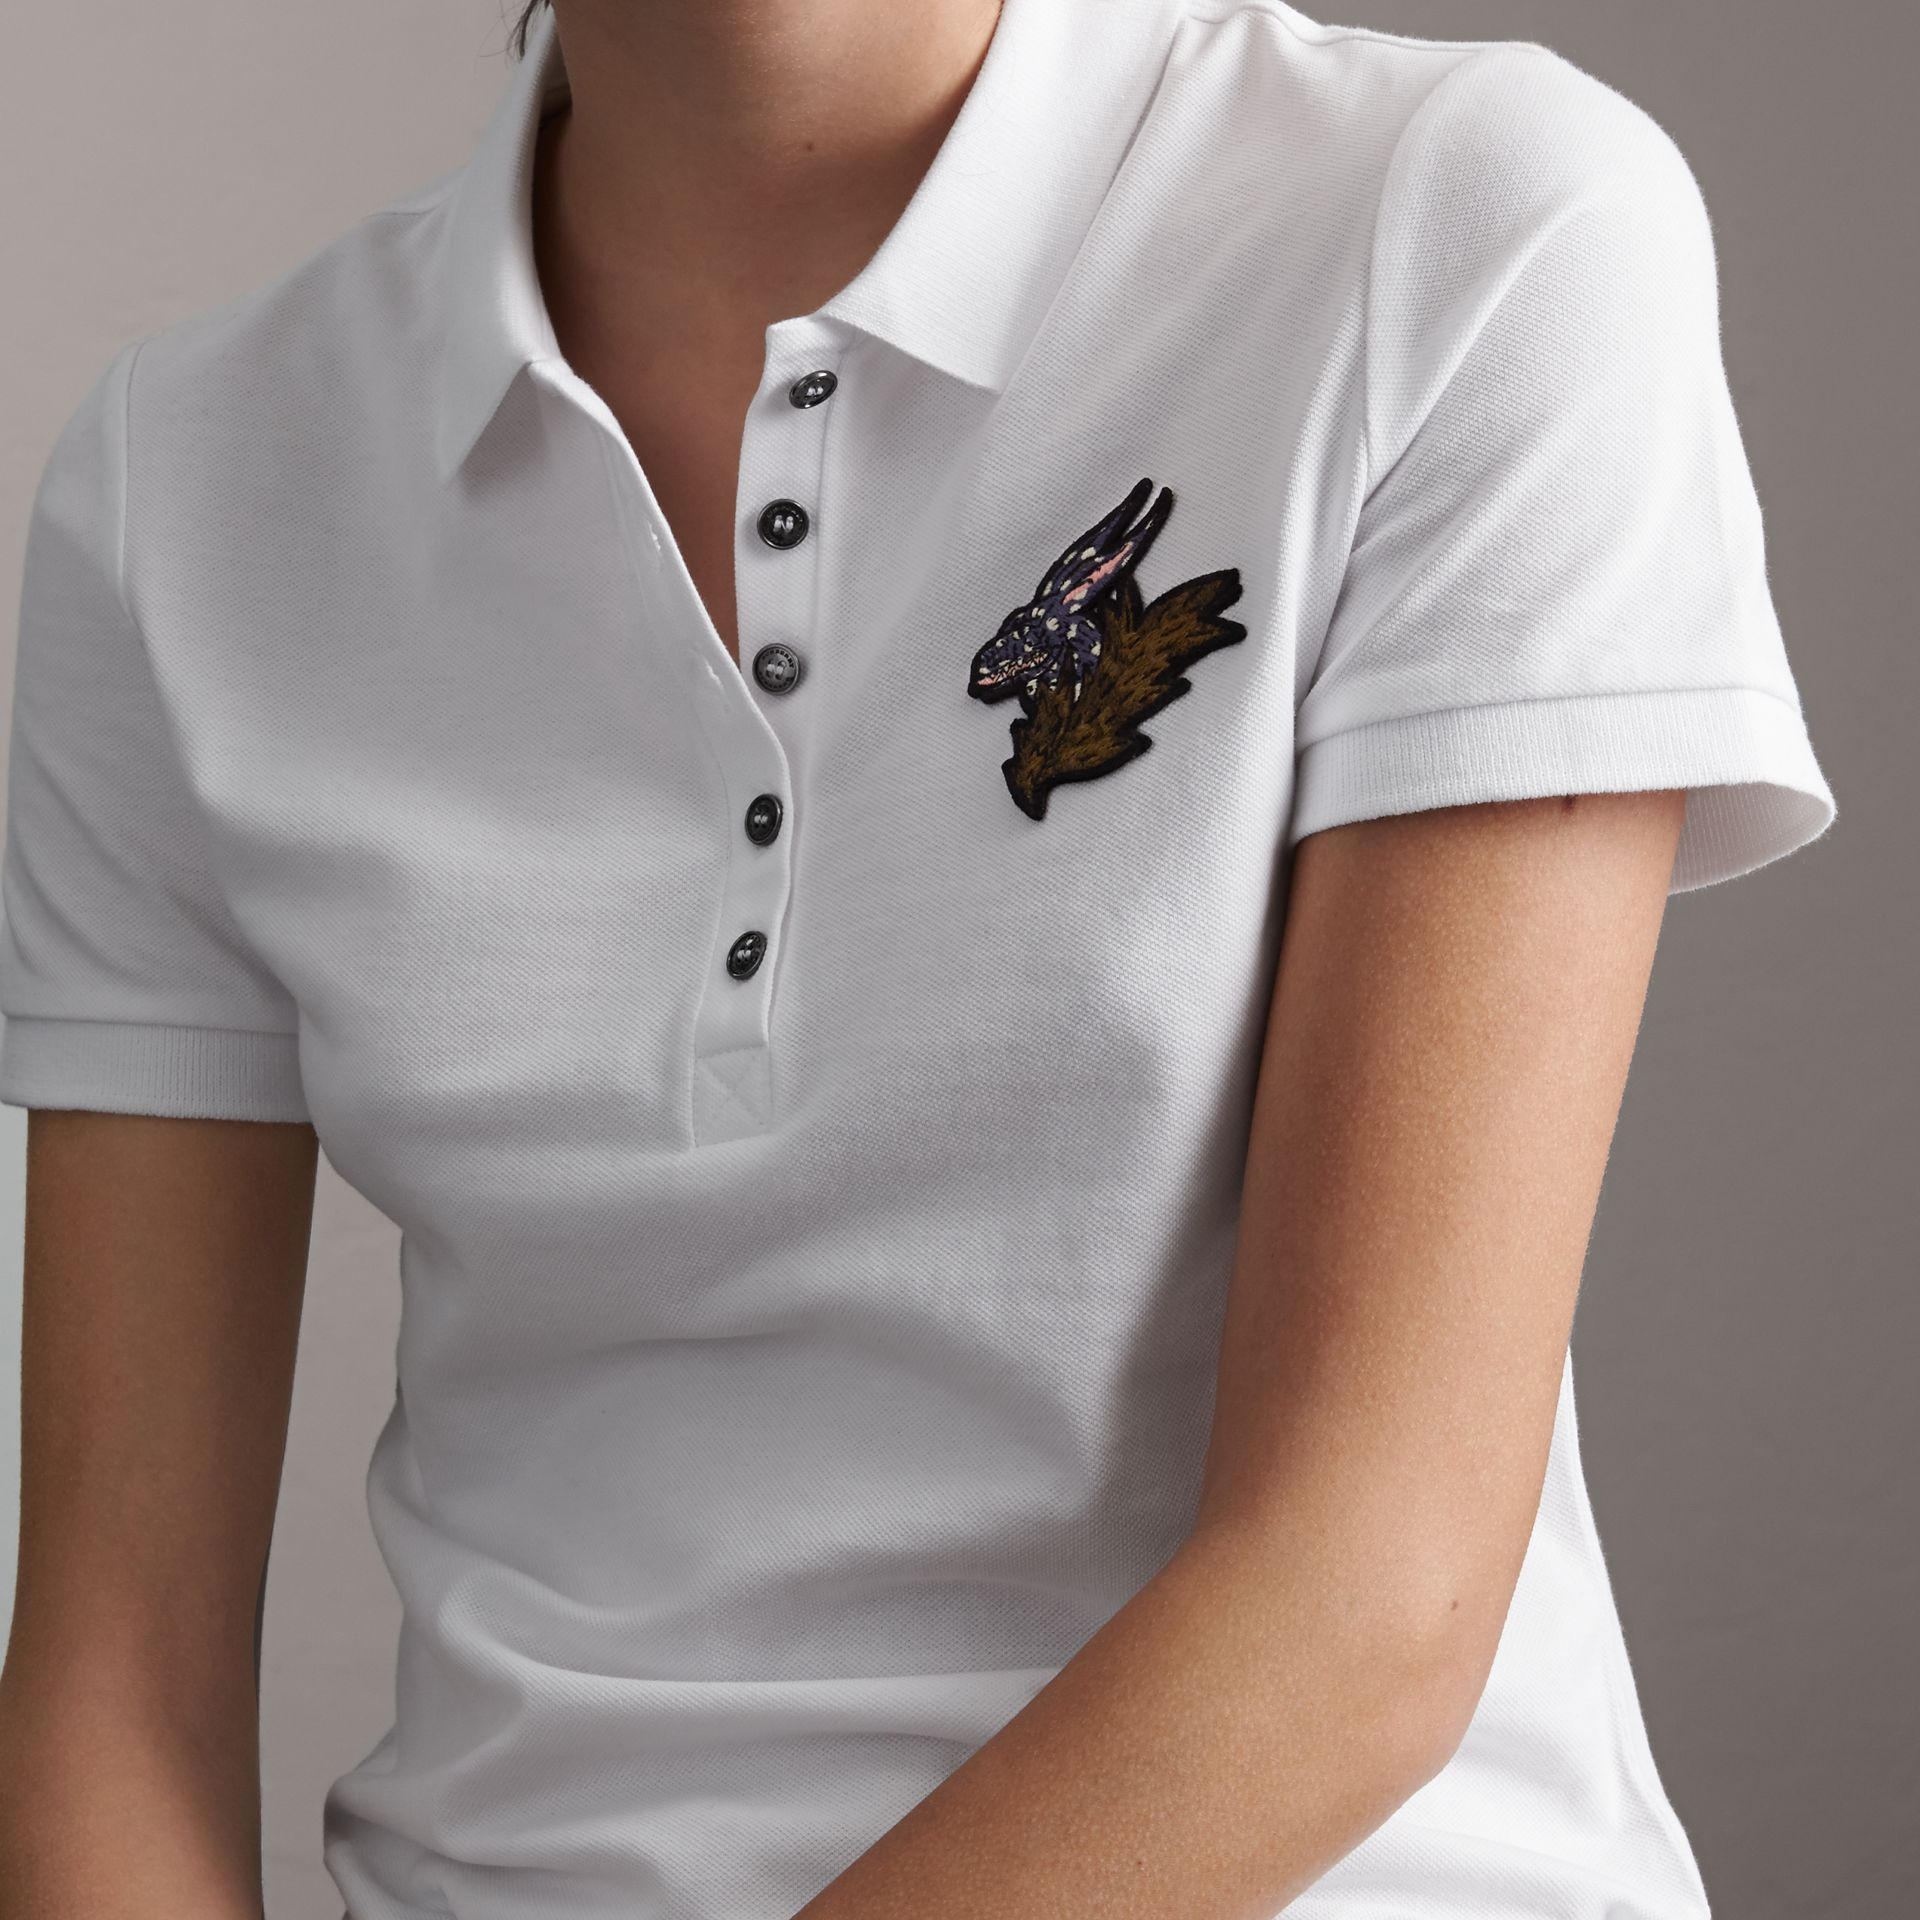 Beasts Motif Stretch Cotton Piqué Polo Shirt in White - Women | Burberry Canada - gallery image 4